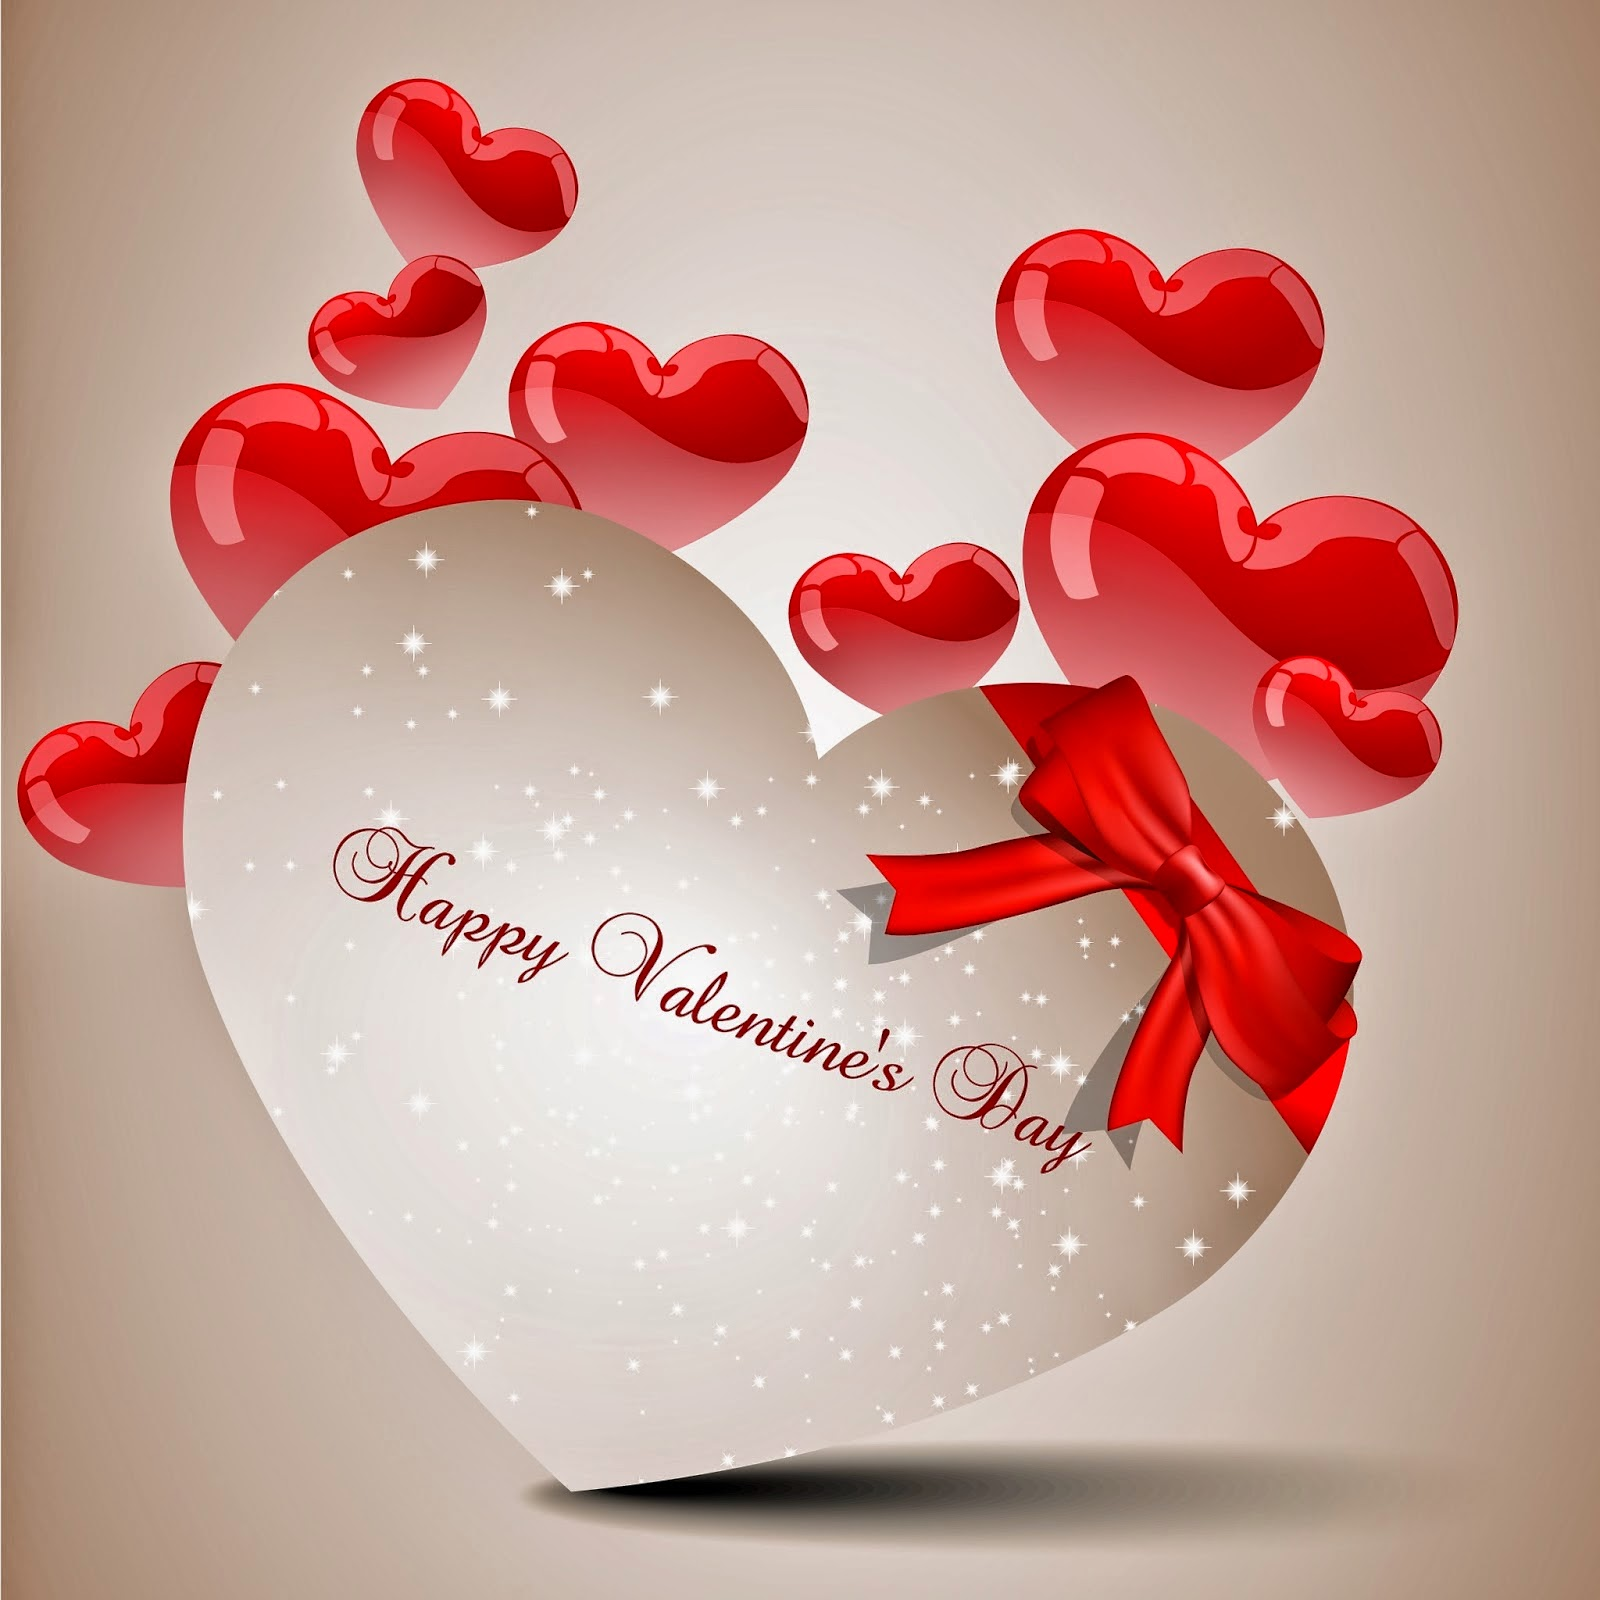 valentines day wallpaper greetings cool hd background desktop